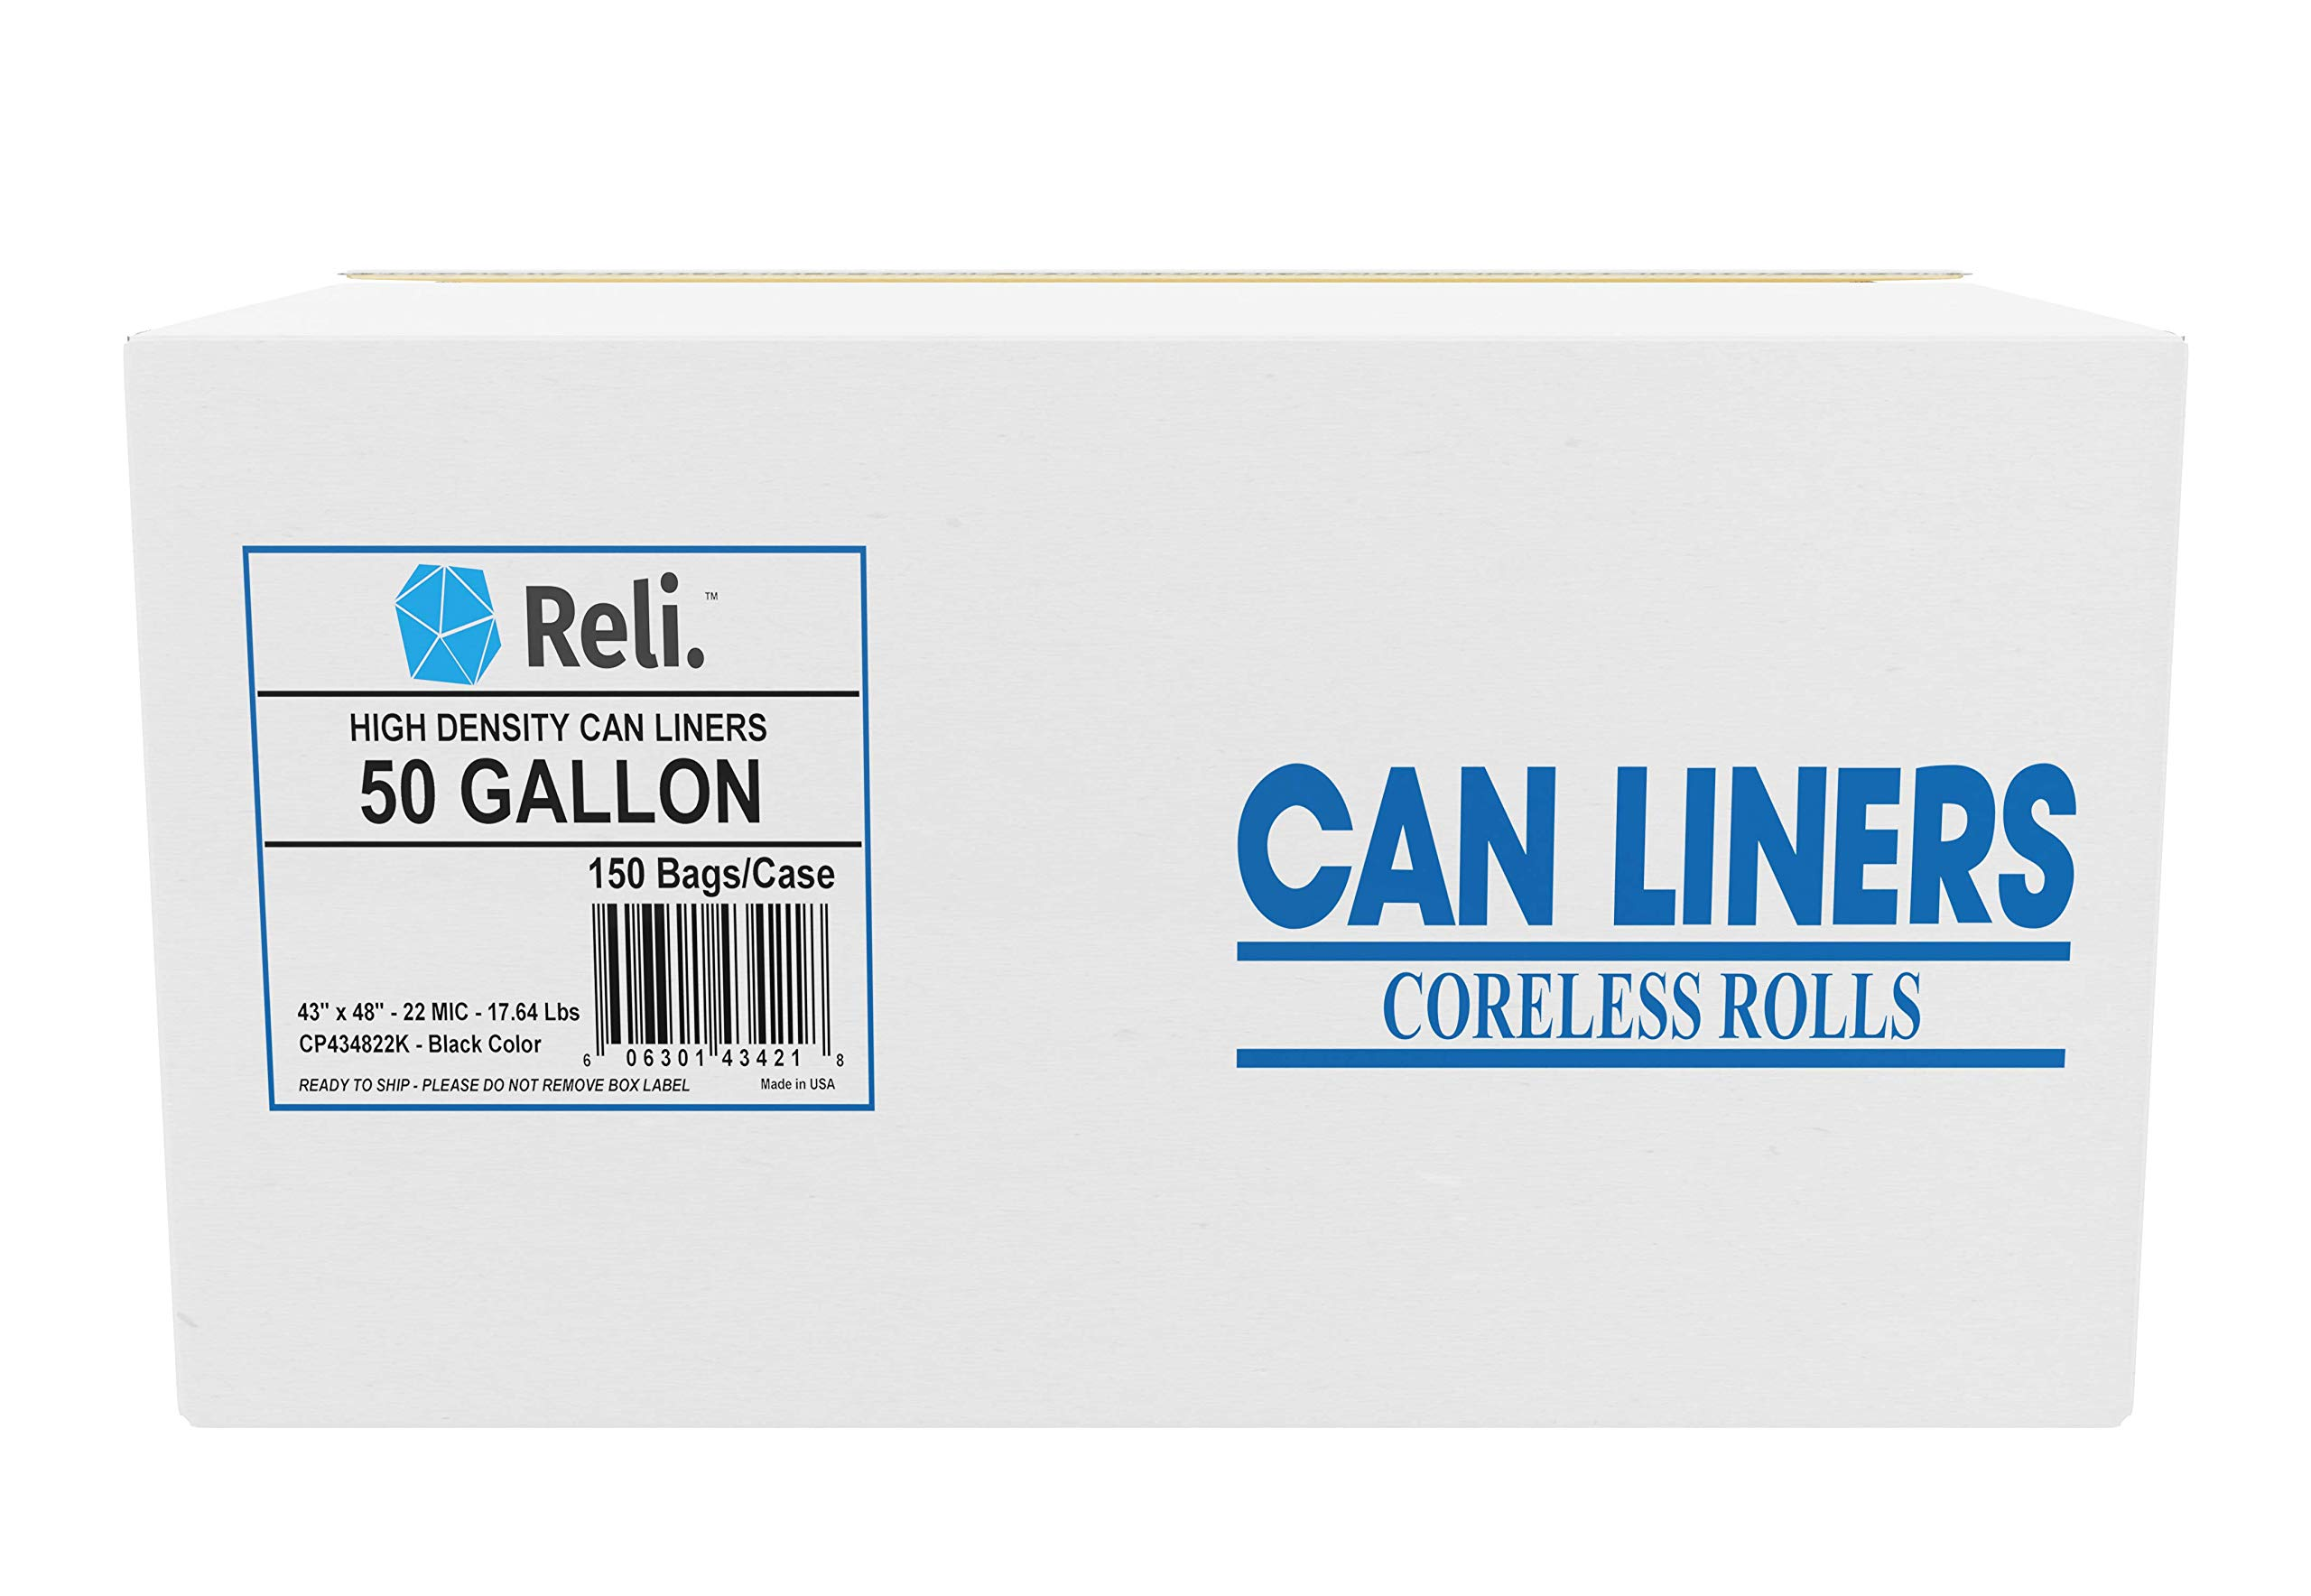 Reli. Trash Bags, 50 Gallon (150 Count) (Black) - Super Heavy High Density - Easy Grab Rolls - Can Liners, Garbage Bags with 45 Gallon (45 Gal) - 50 Gallon (50 Gal) Capacity